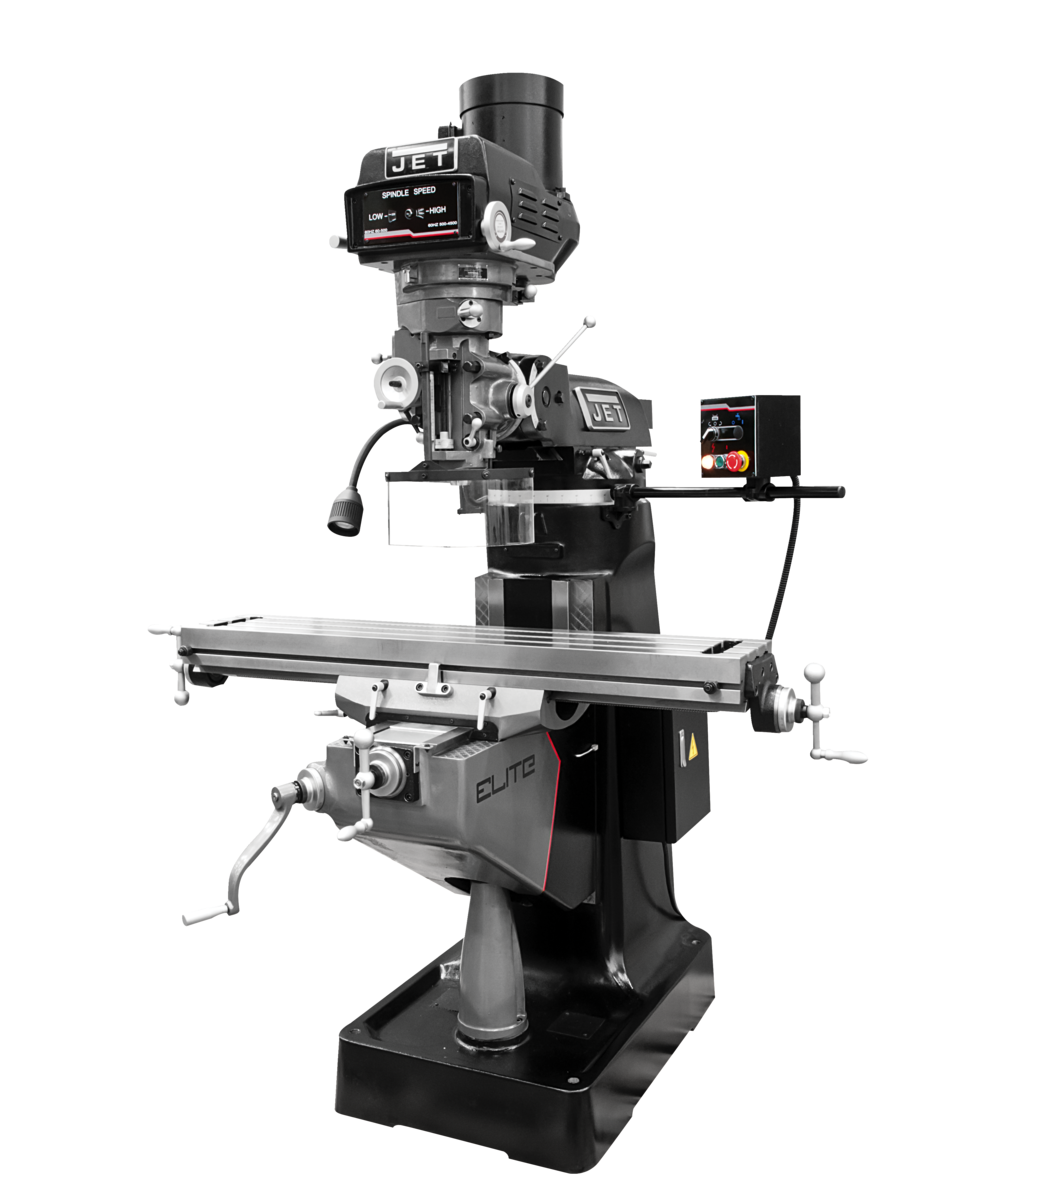 ETM-949 Mill with 2-Axis Newall DP700 DRO and X, Y-Axis JET Powerfeeds